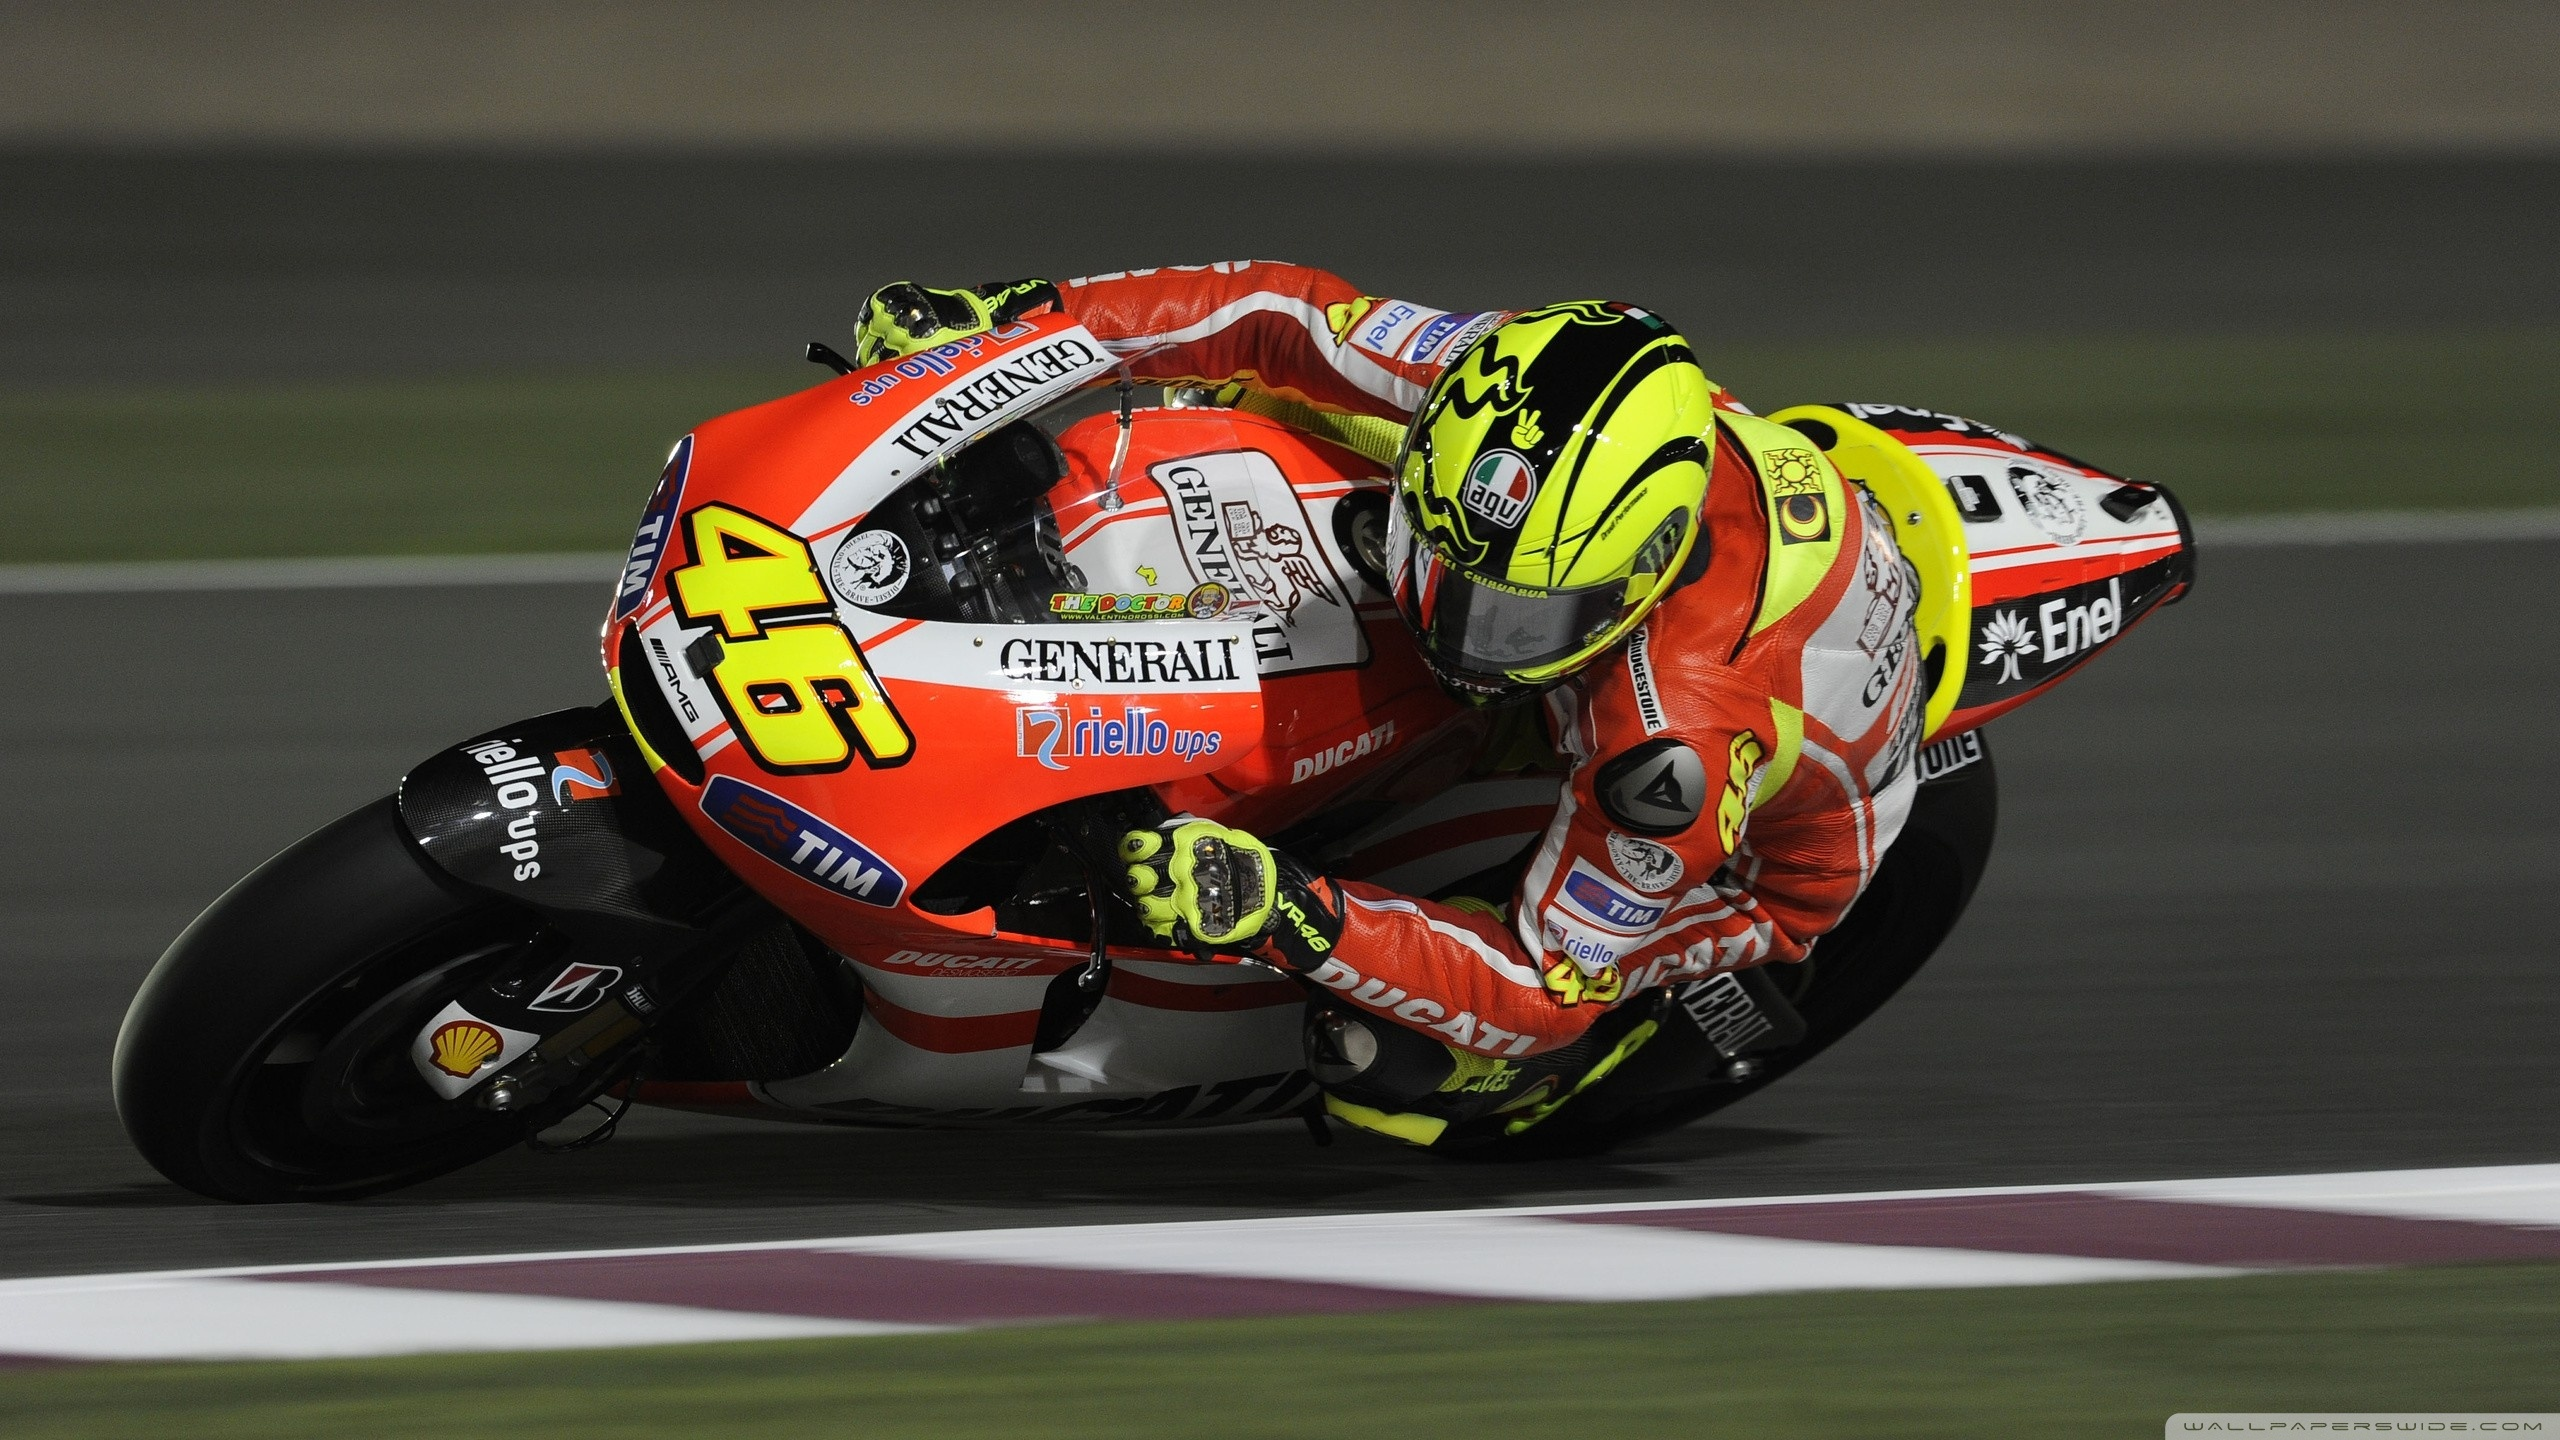 Valentino Rossi Wallpapers Wallpapers All Superior Valentino Rossi Wallpapers Backgrounds Wallpapersplanet Net